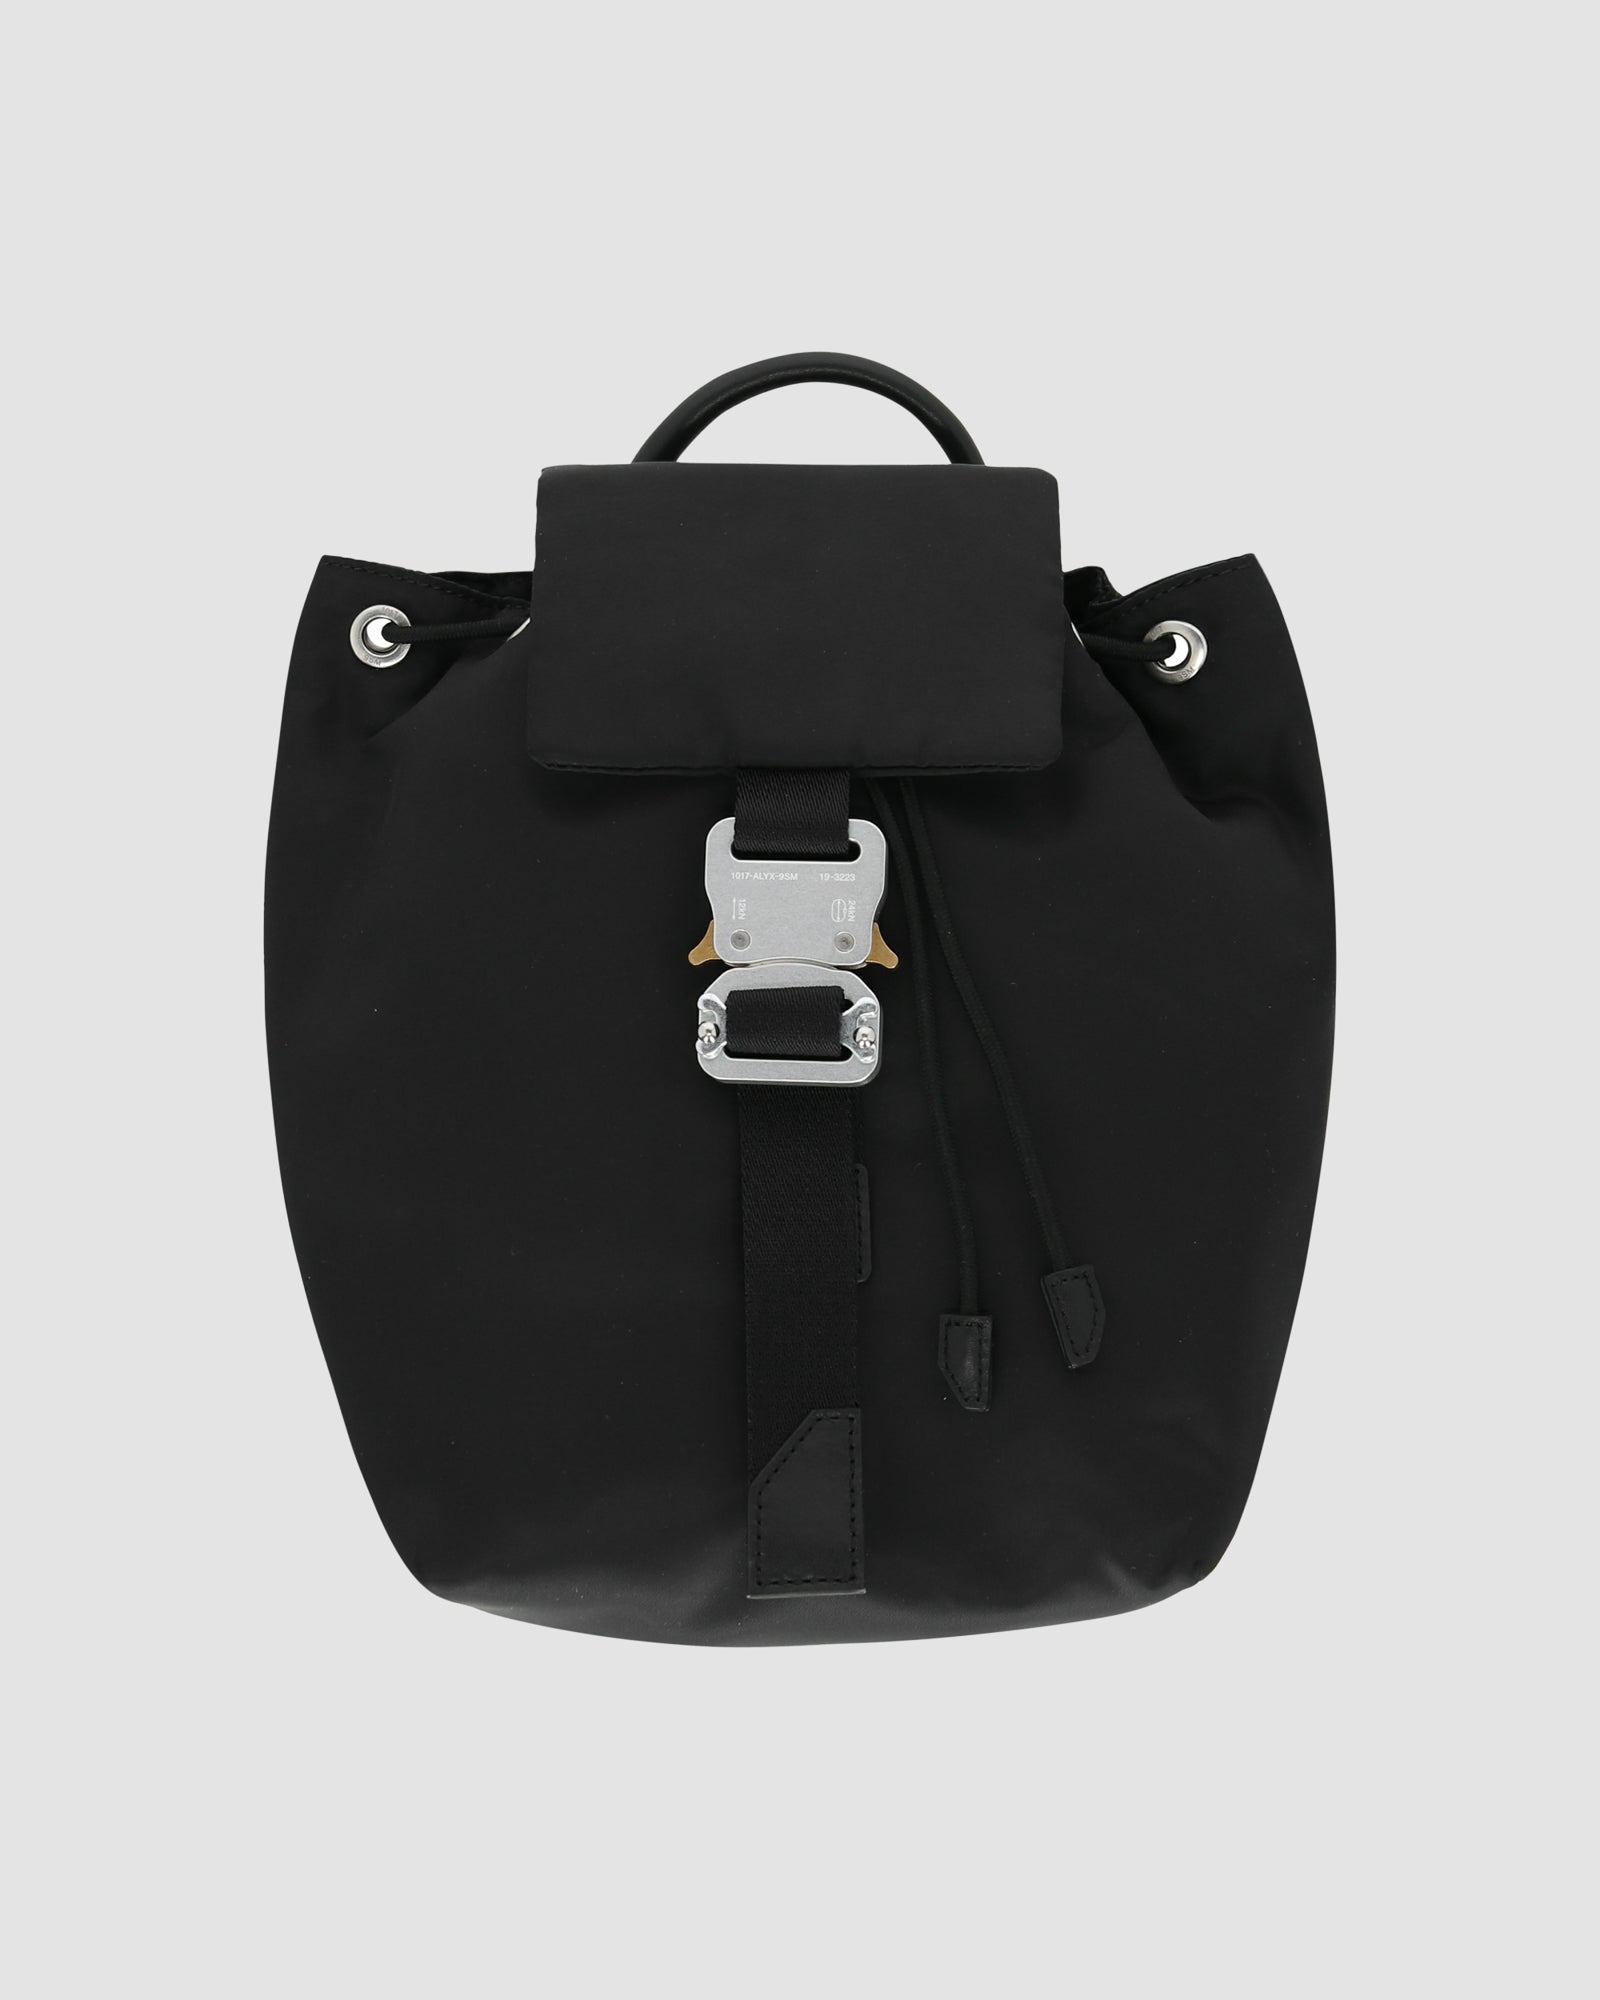 RE-NYLON MULTI BAG/BACKPACK